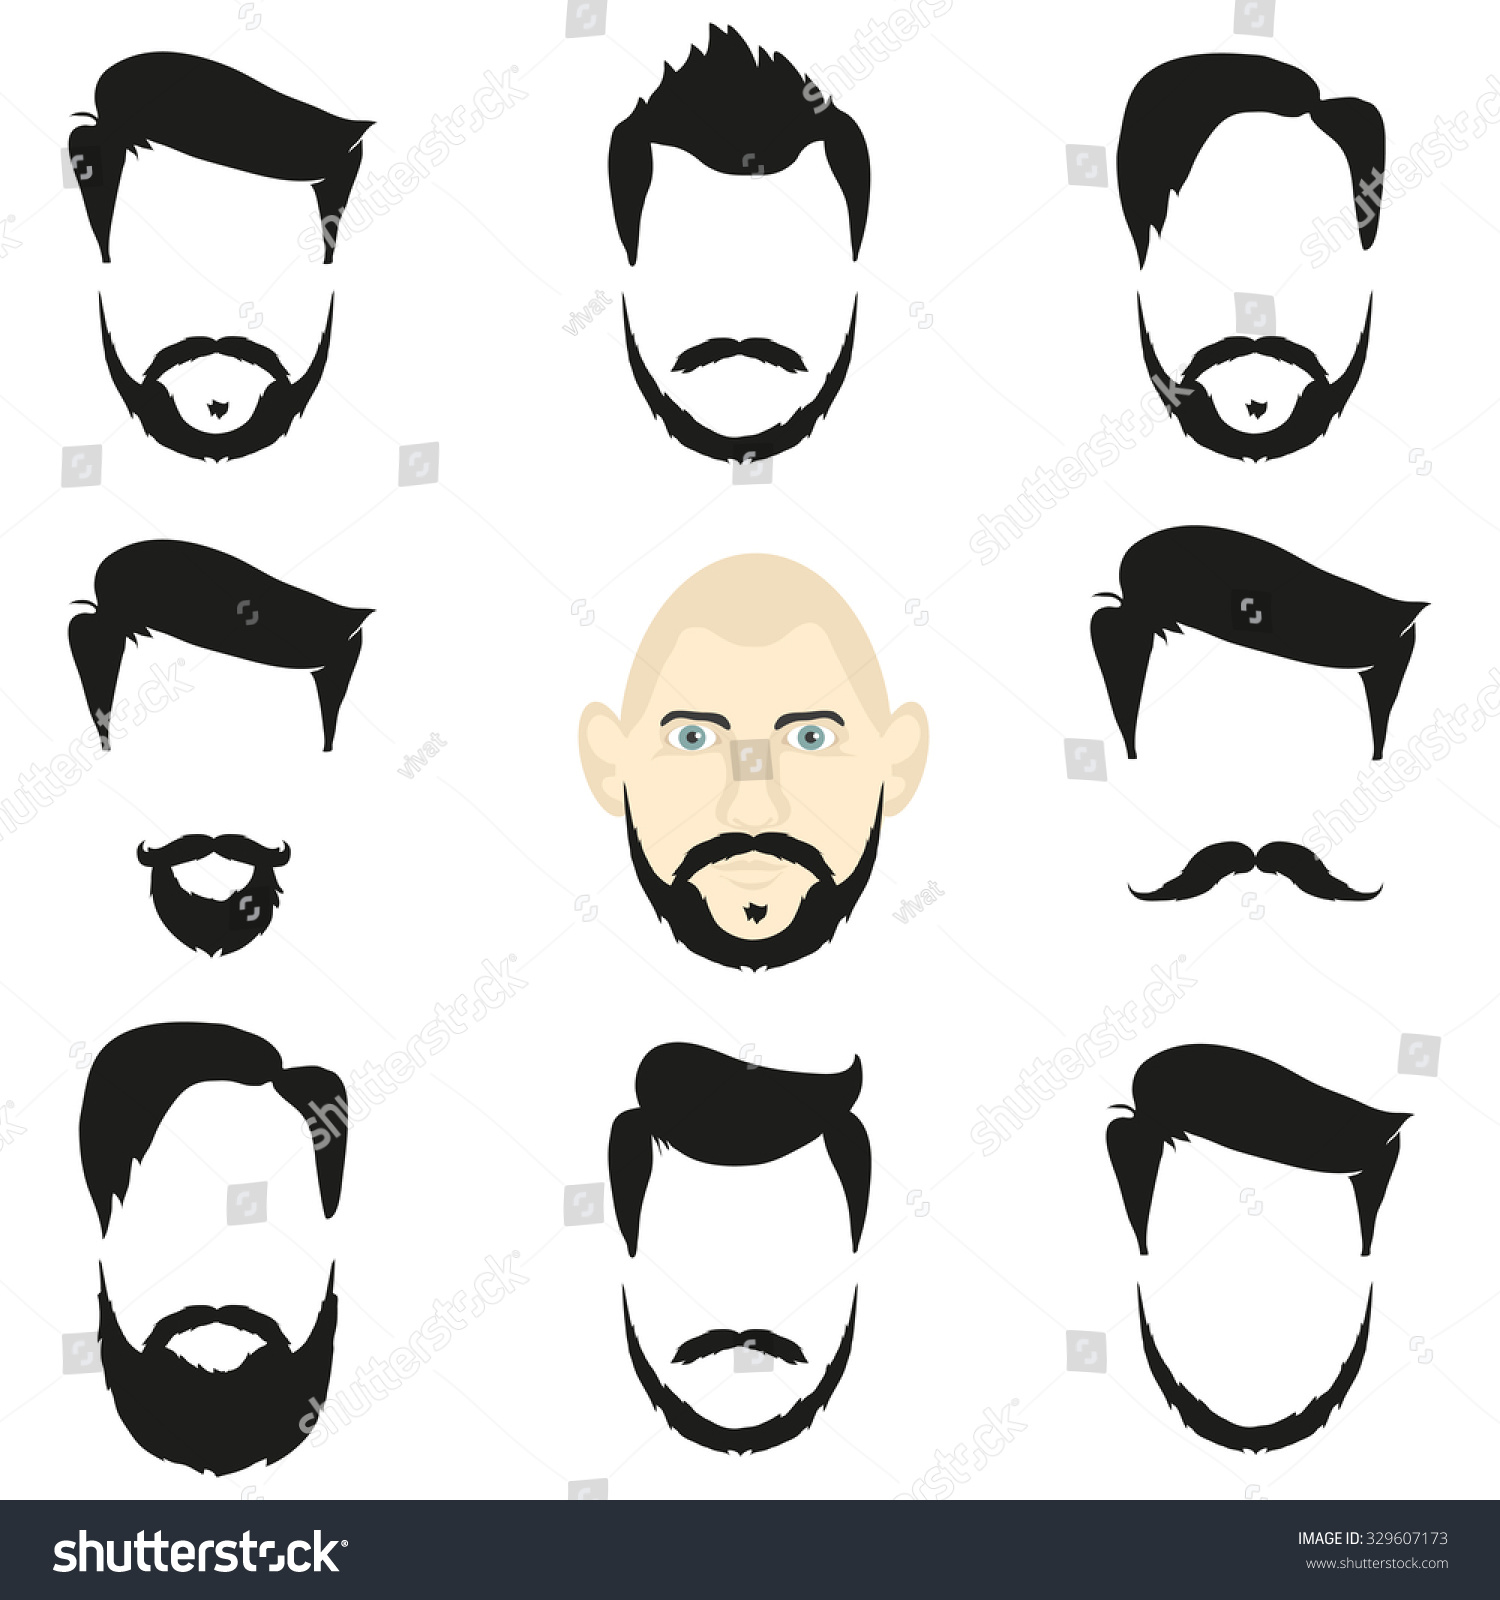 the hipster facial hair style